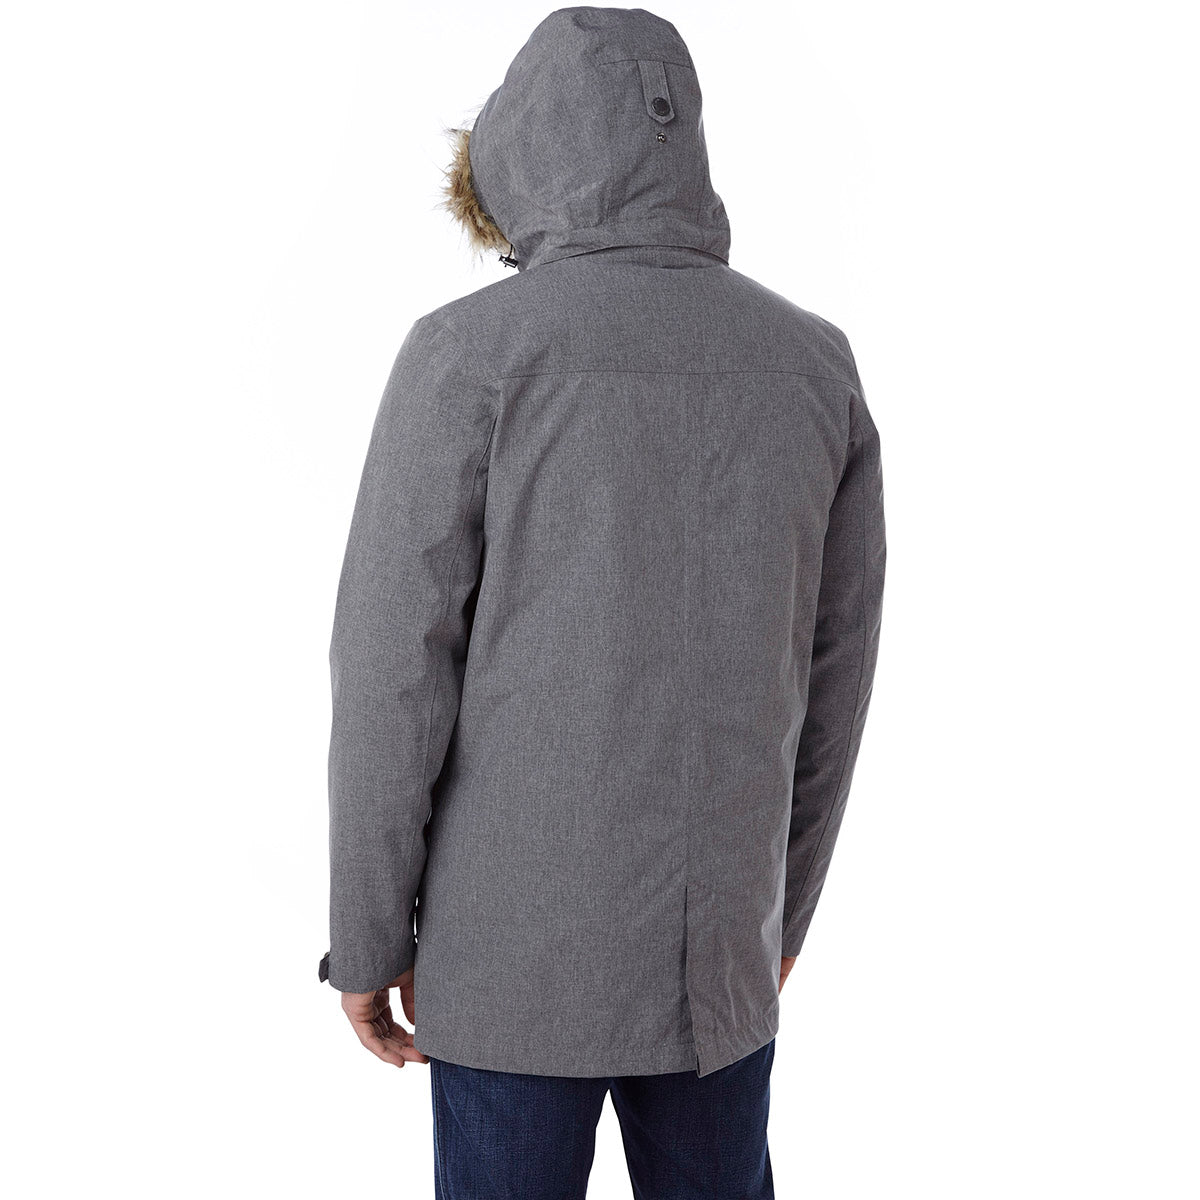 Kingston Mens Milatex 3-In-1 Jacket - Grey Marl image 4